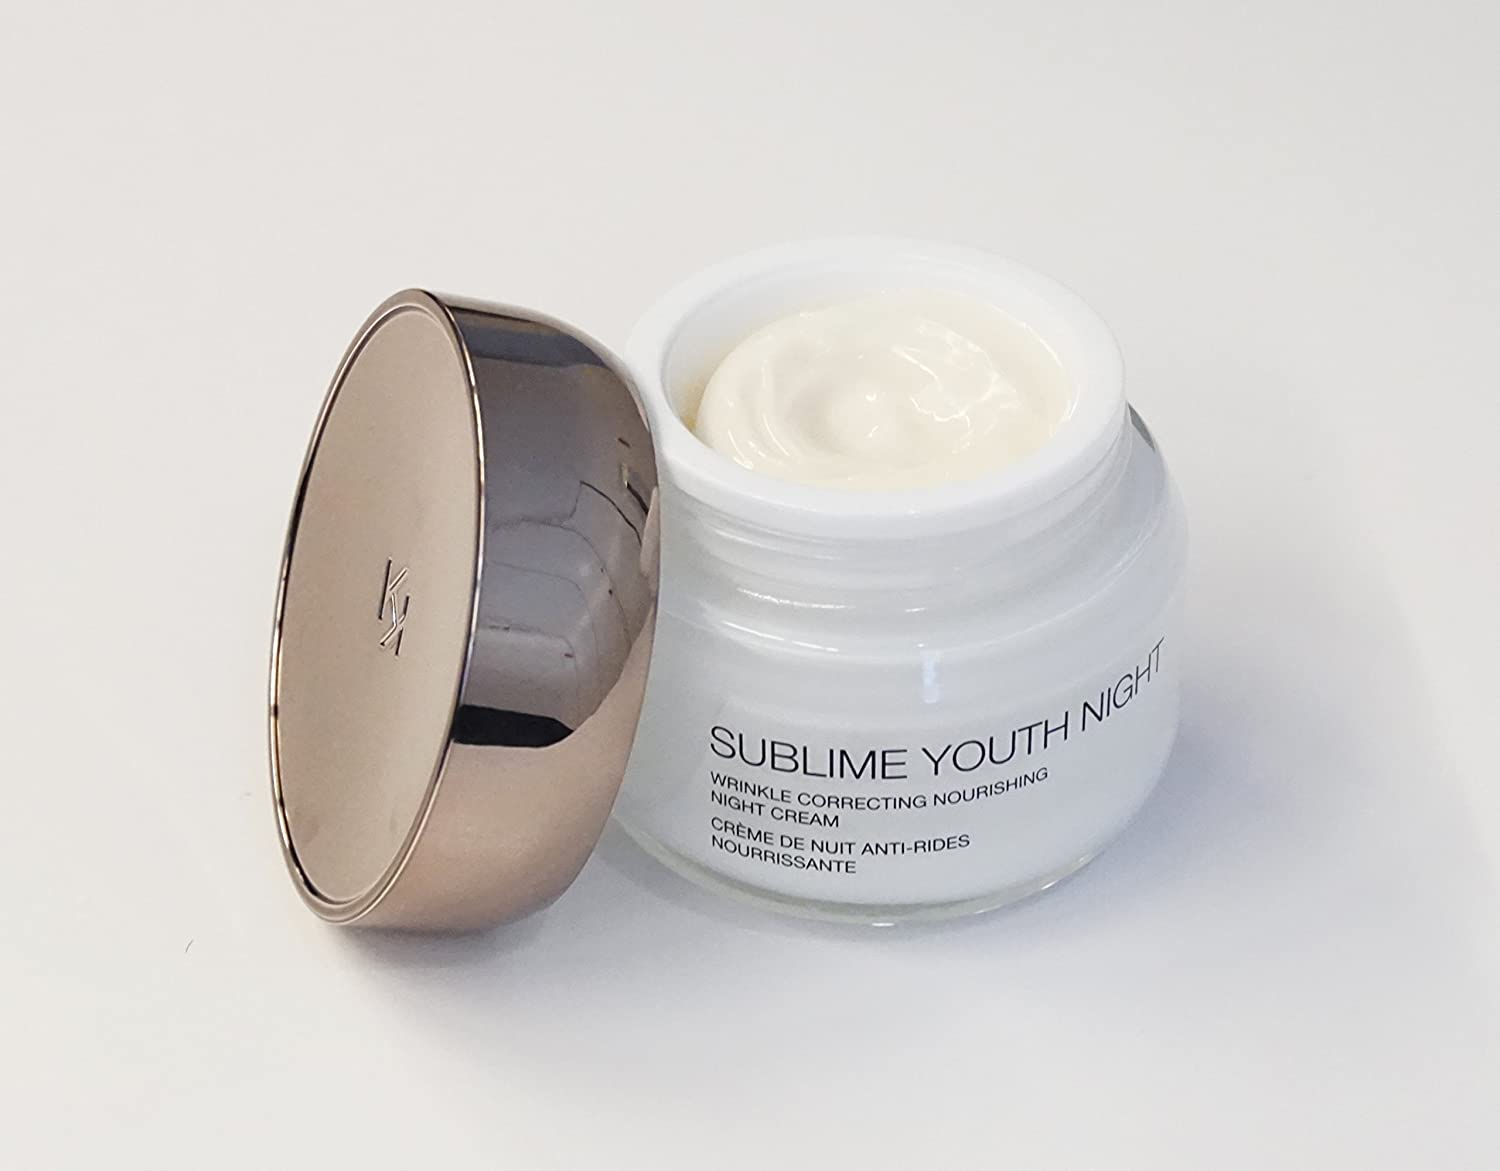 KIKO MILANO – Sublime Youth Night Wrinkle correcting and nourishing night cream. With Actiglow for All Skin Types. 50ml 1.69 FL.OZ